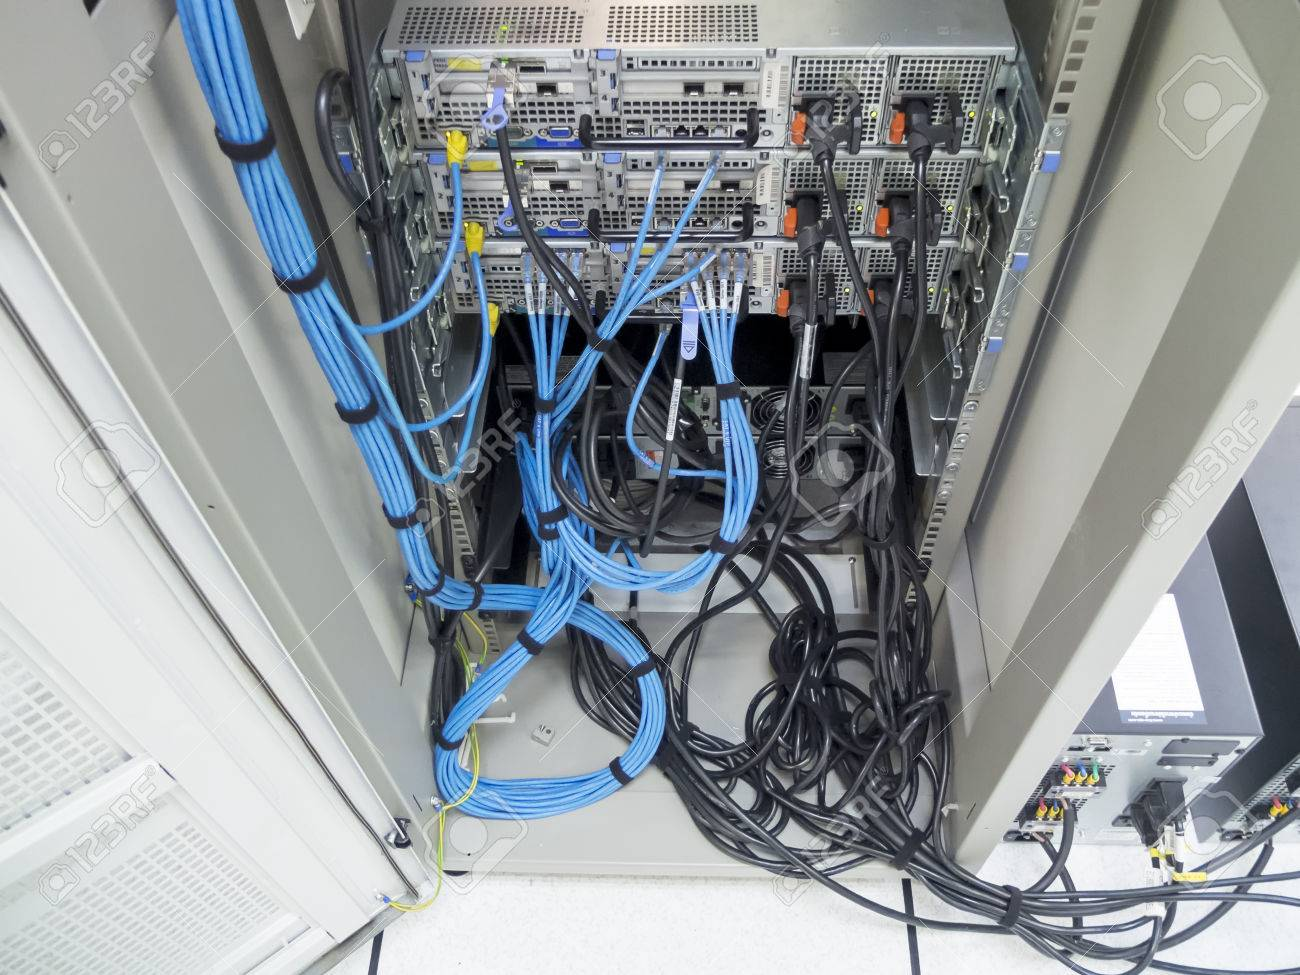 The LAN Cable Use Server Of Factory Stock Photo, Picture And Royalty ...